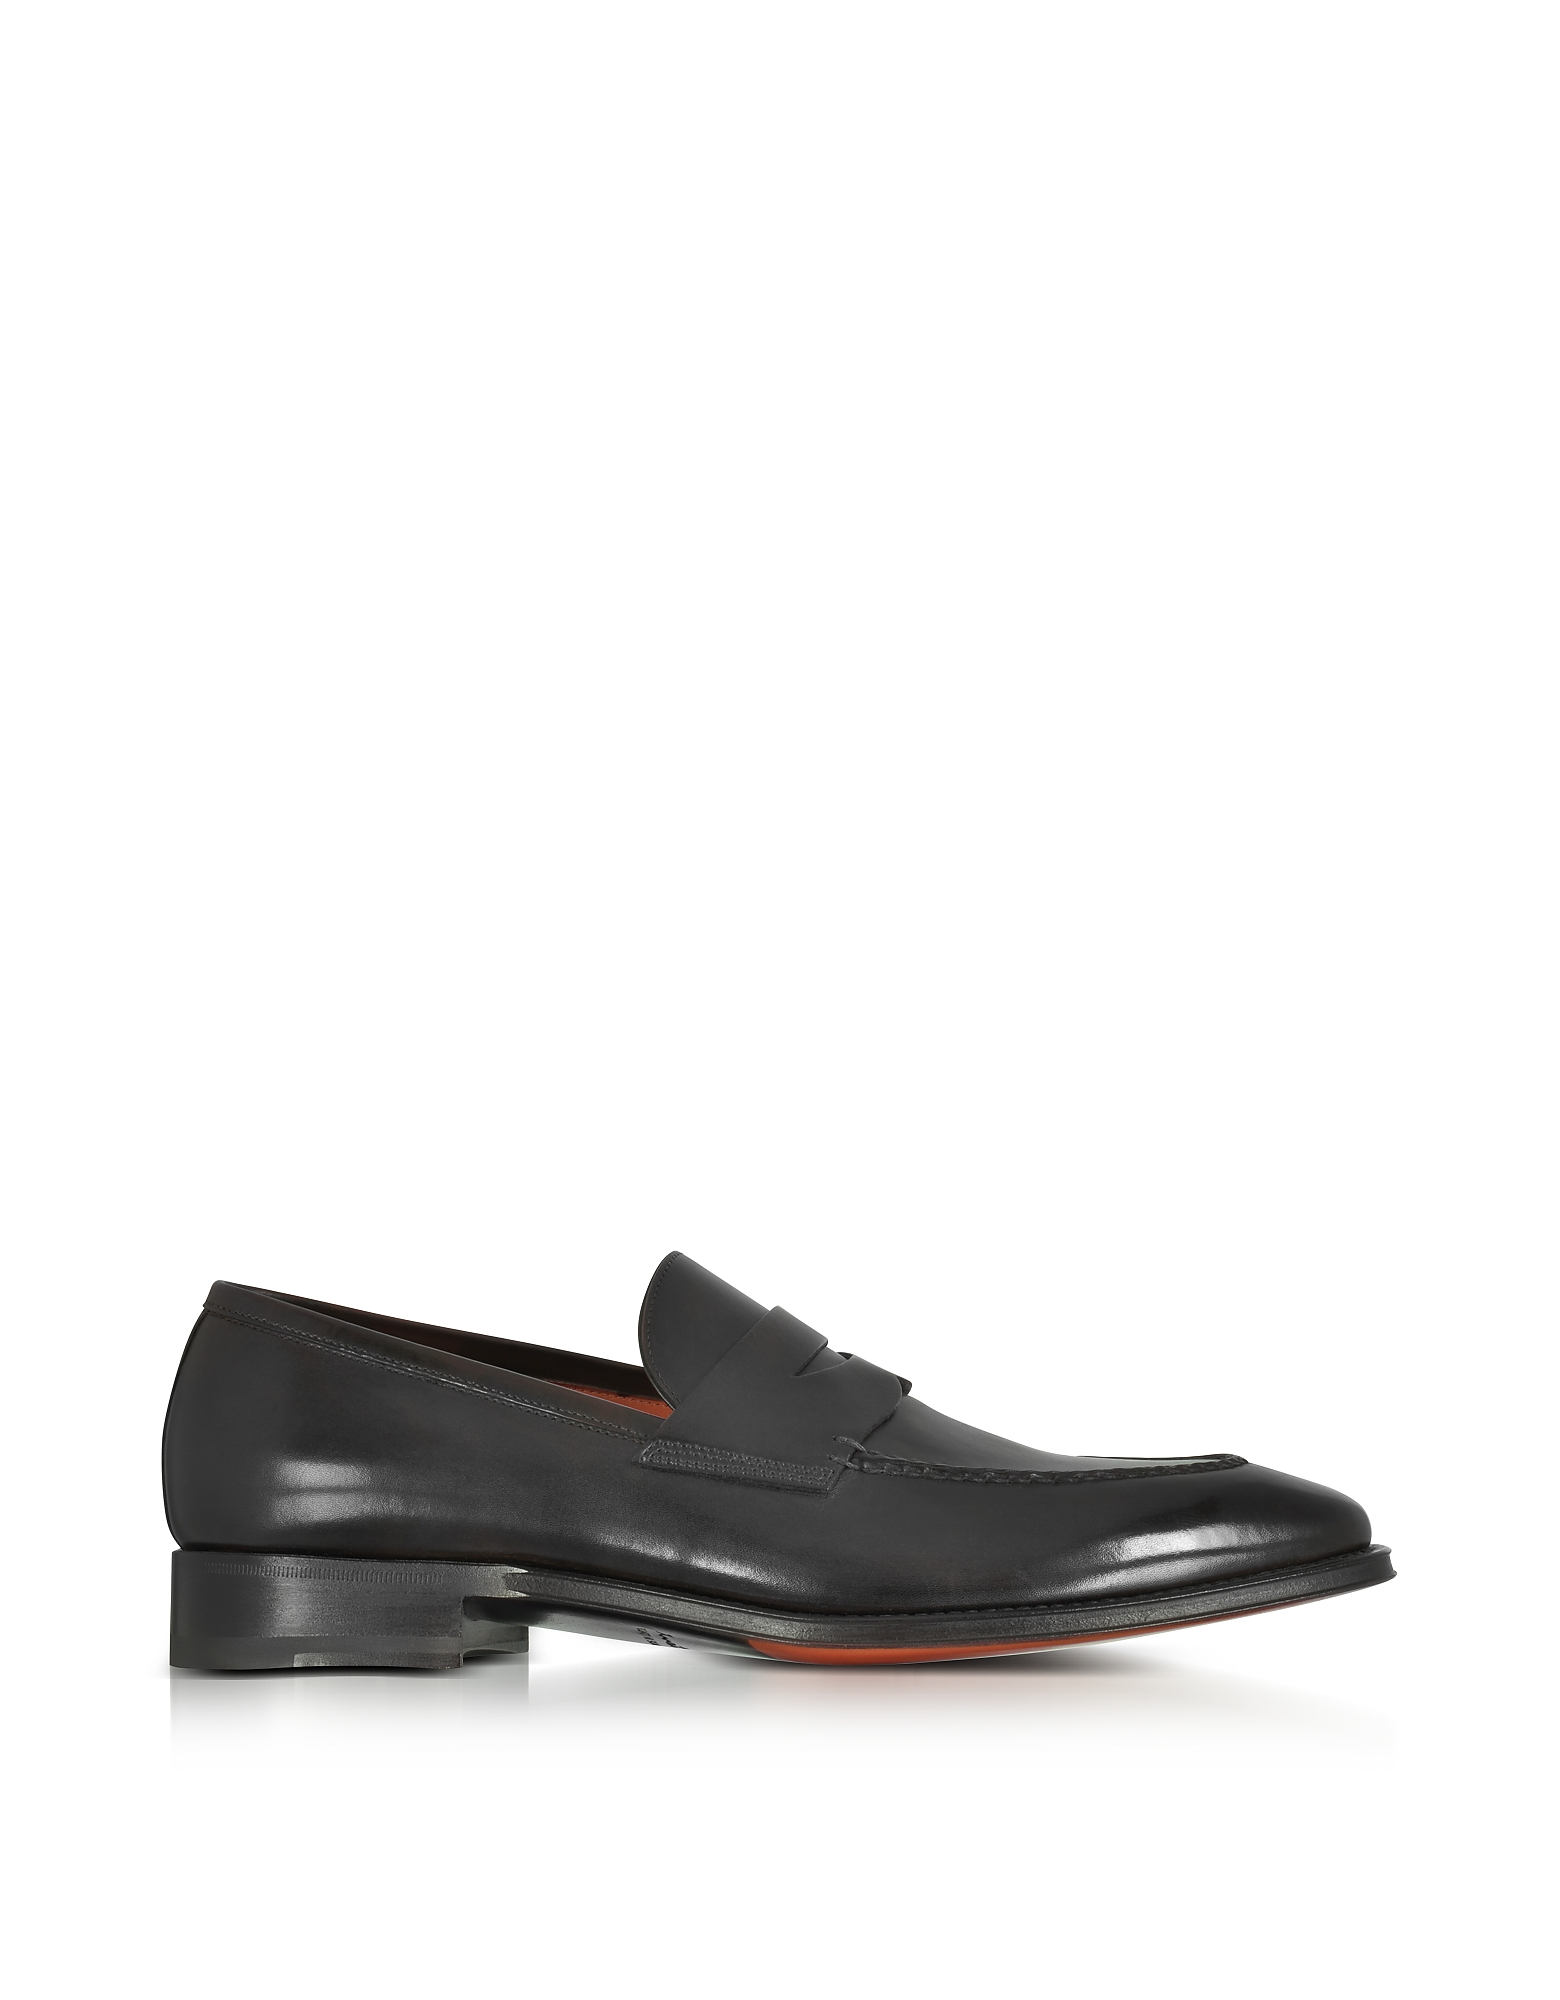 Santoni Shoes, Duke Black Leather Penny Loafer Shoes